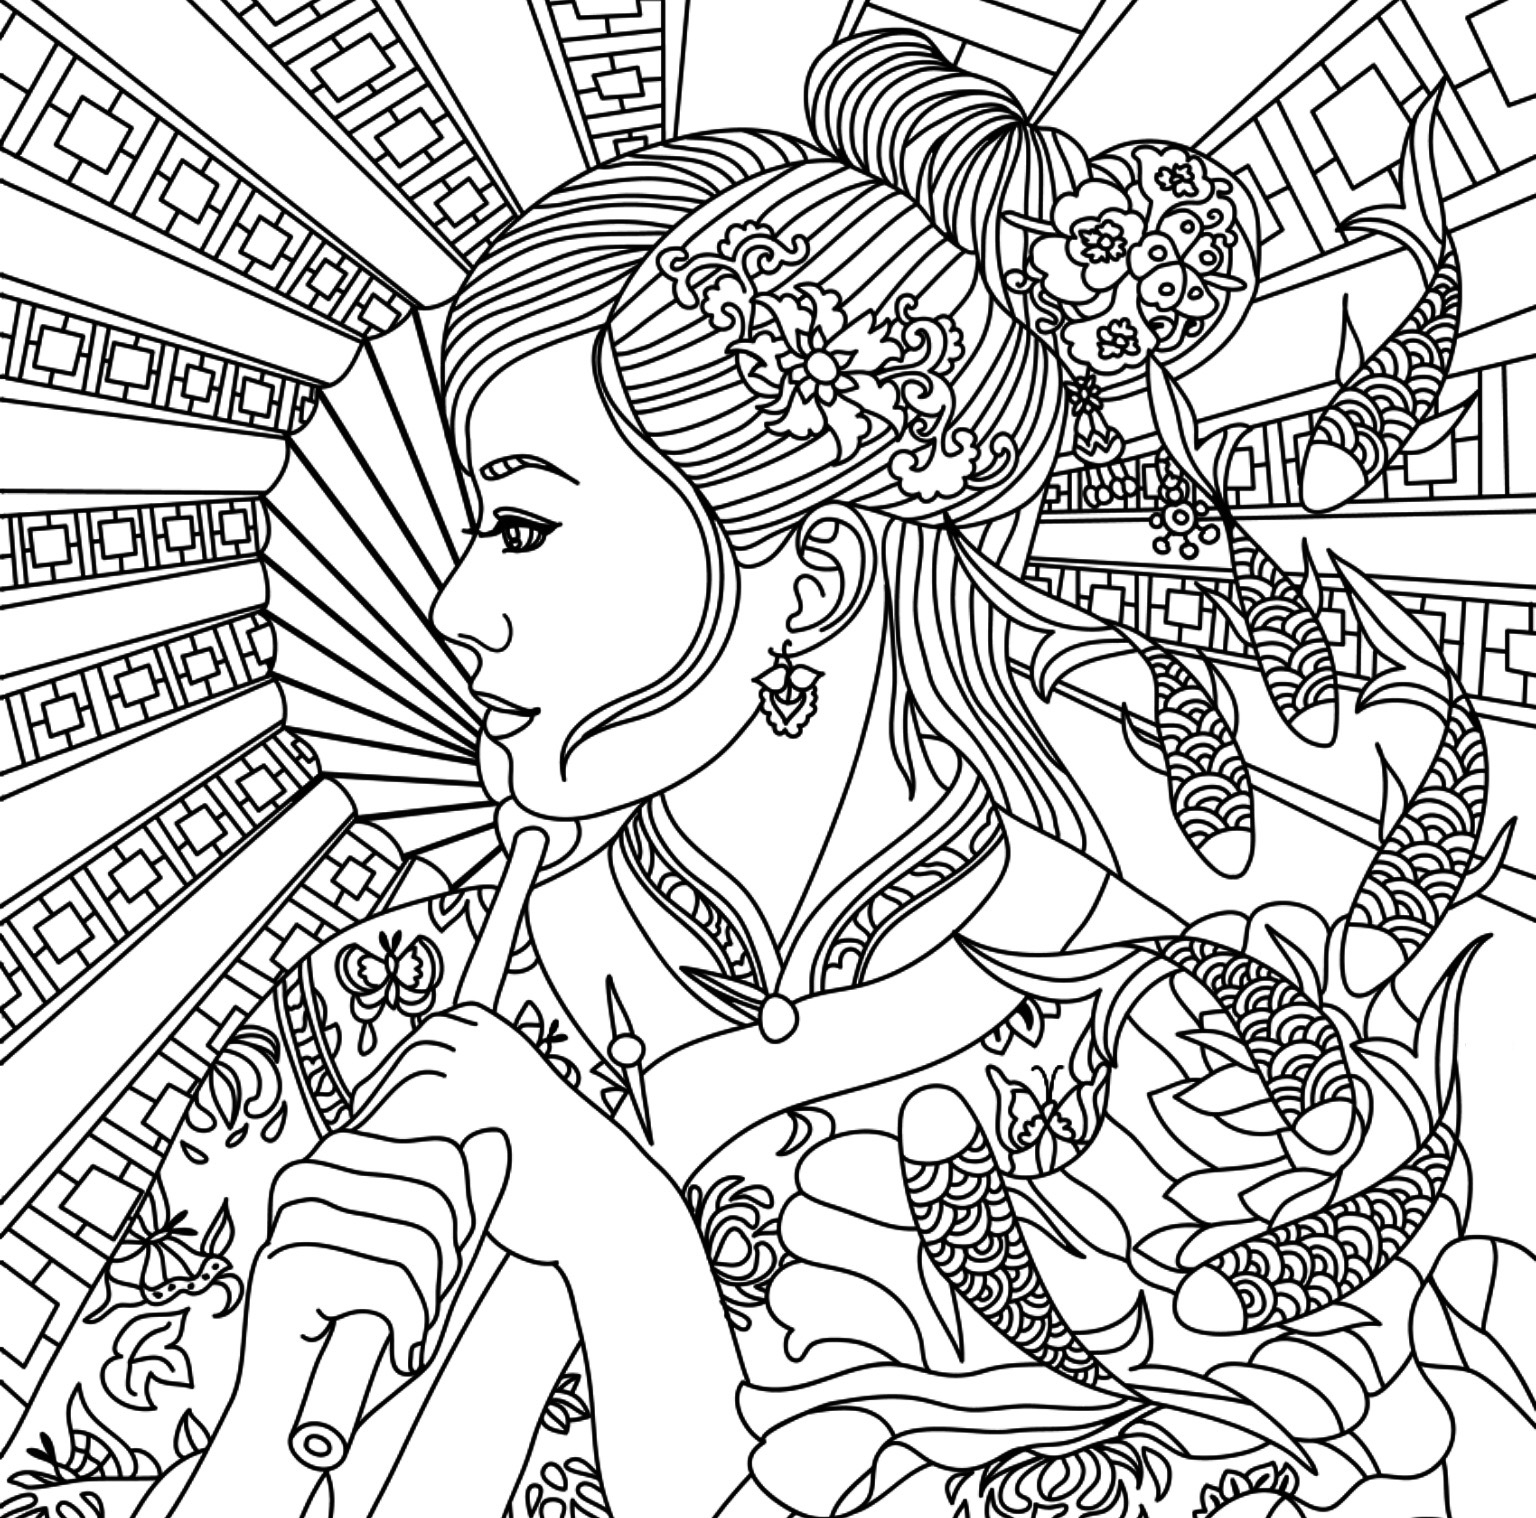 full size coloring pages full size coloring pages for adults at getdrawings free coloring pages full size